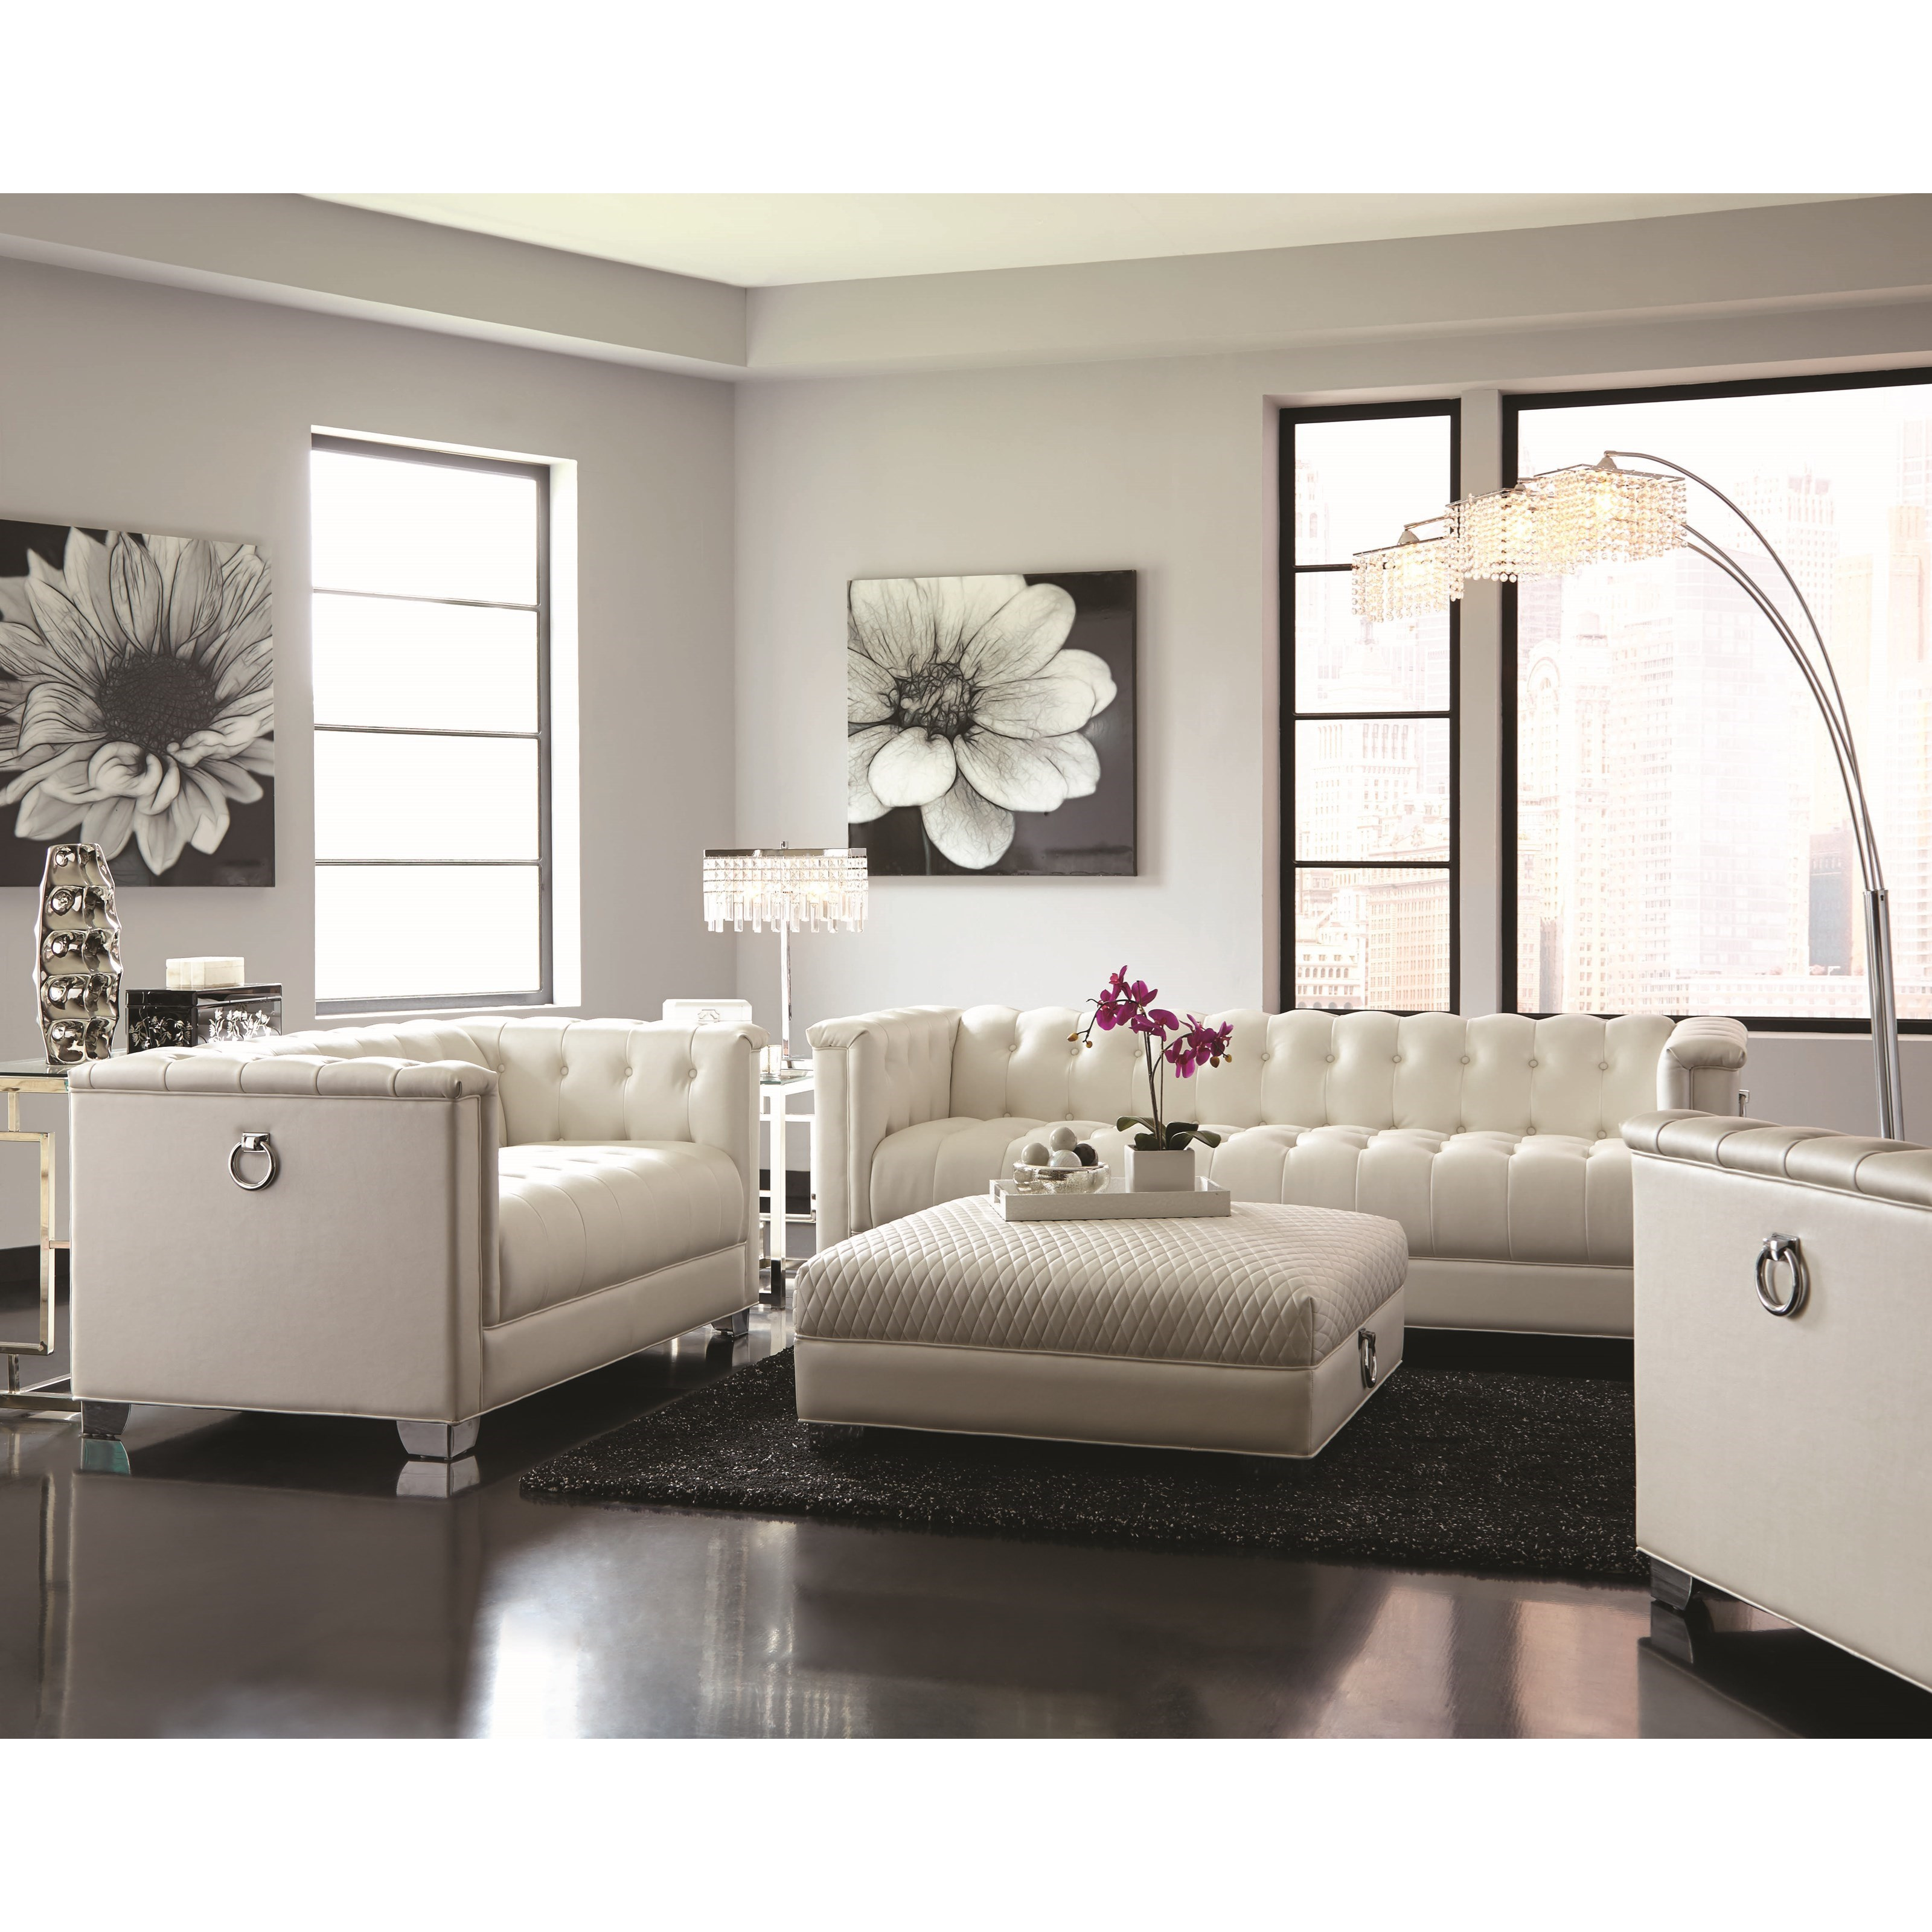 Chaviano Low Profile Pearl White Tufted Sofa 505391